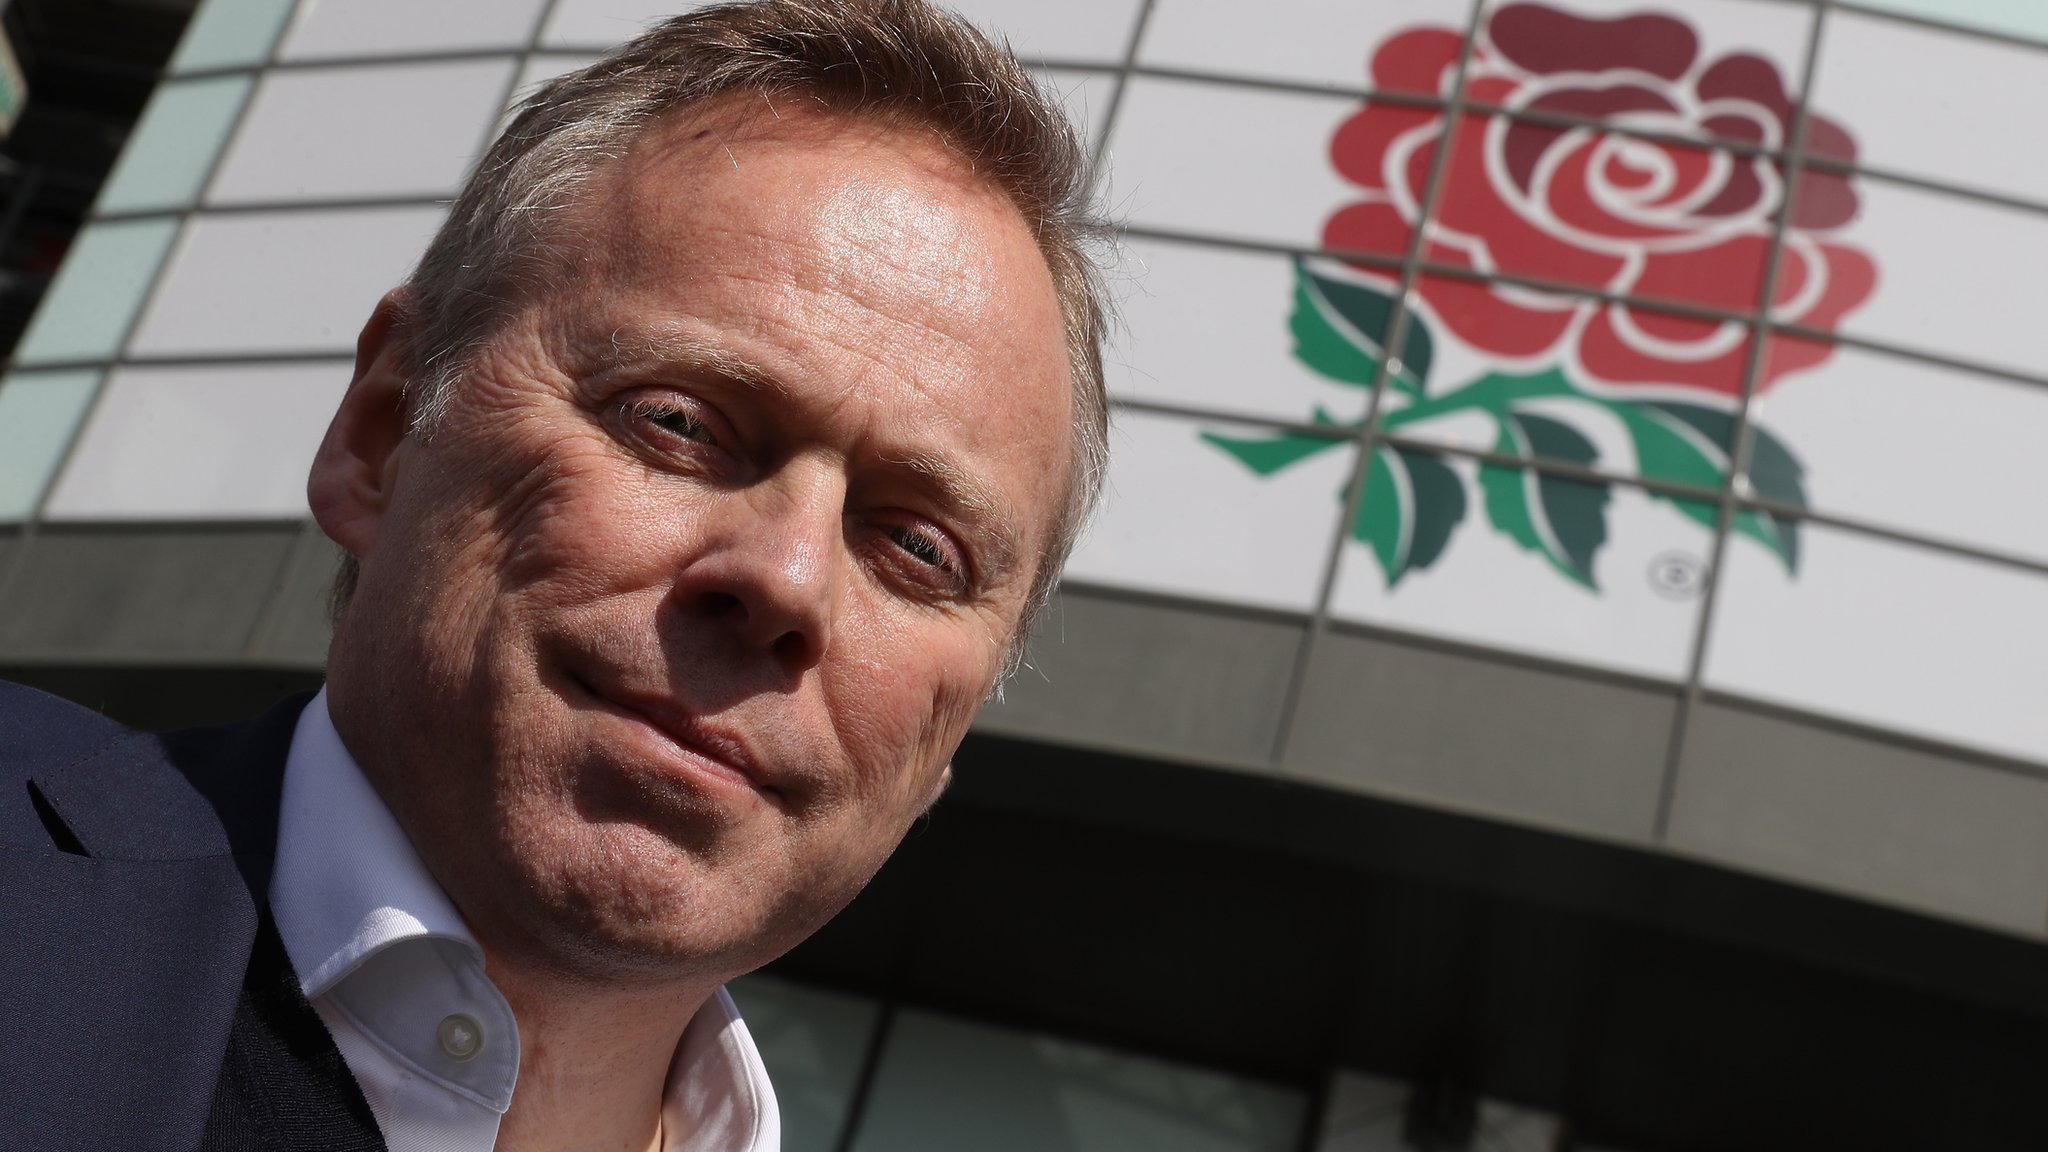 Turmoil? Or no cause for concern? What's going on at the RFU?